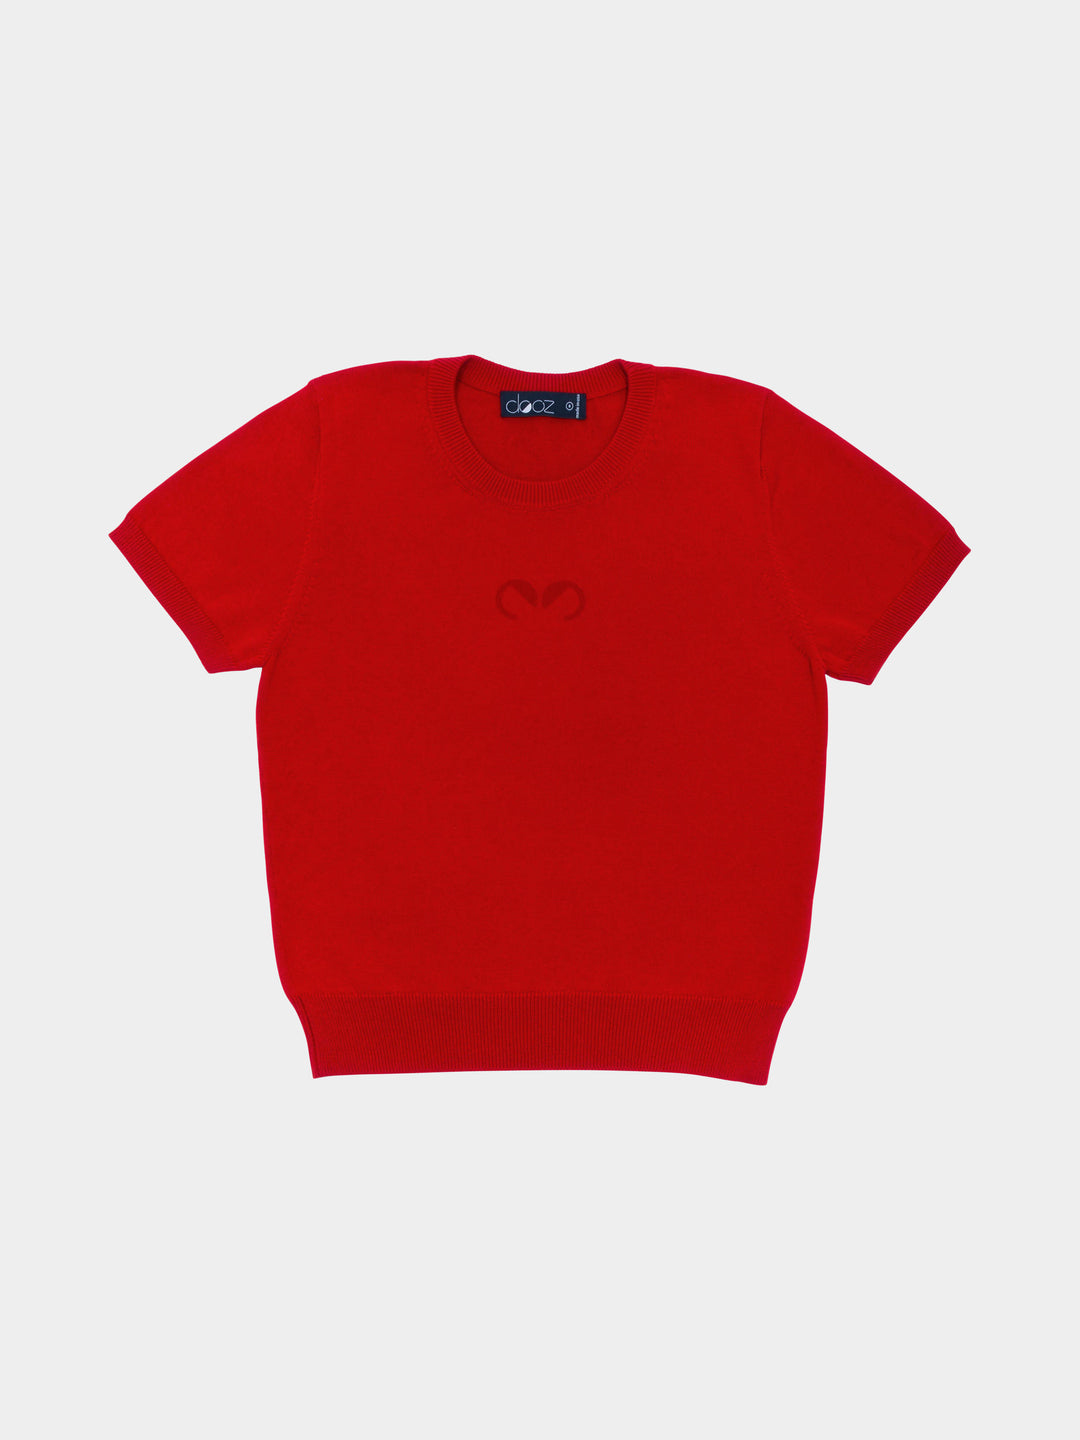 Aries Sweater-T in Red